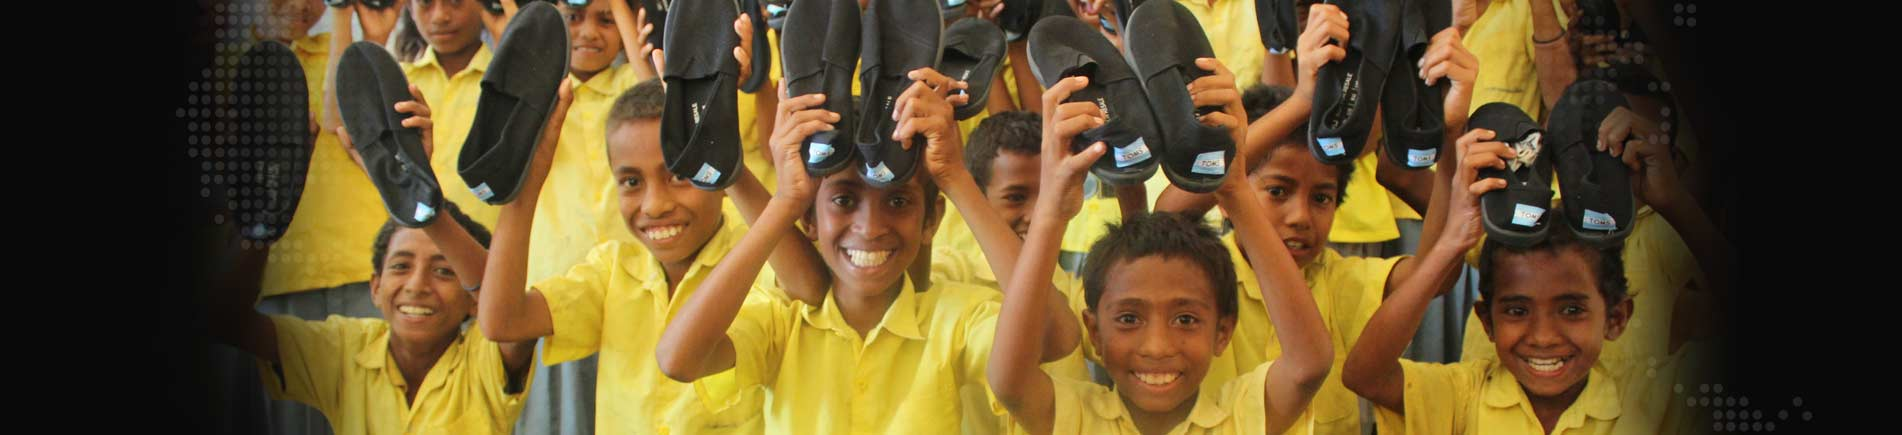 Smiling children with shoes